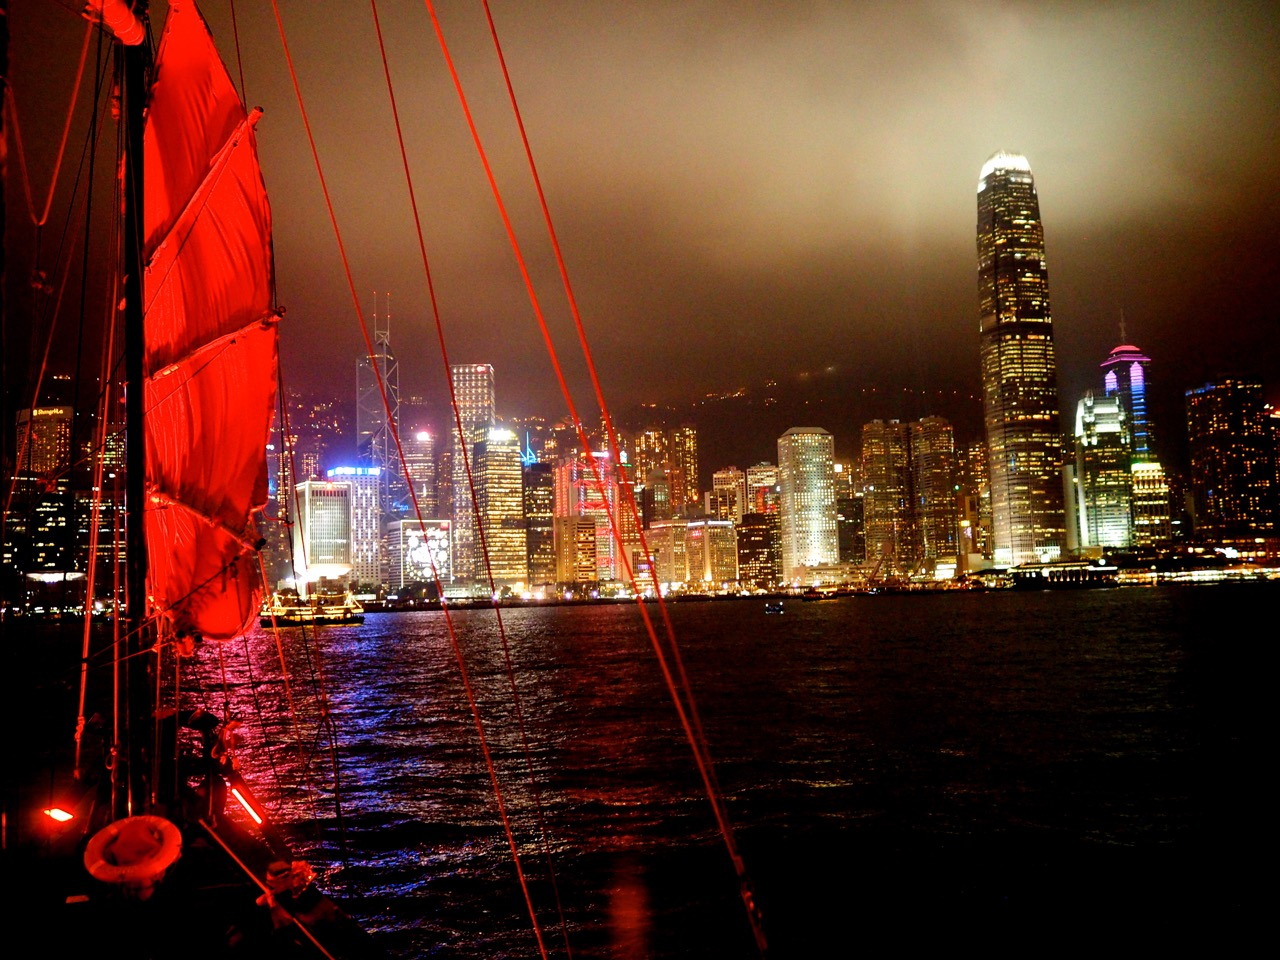 Hong-Kong by night